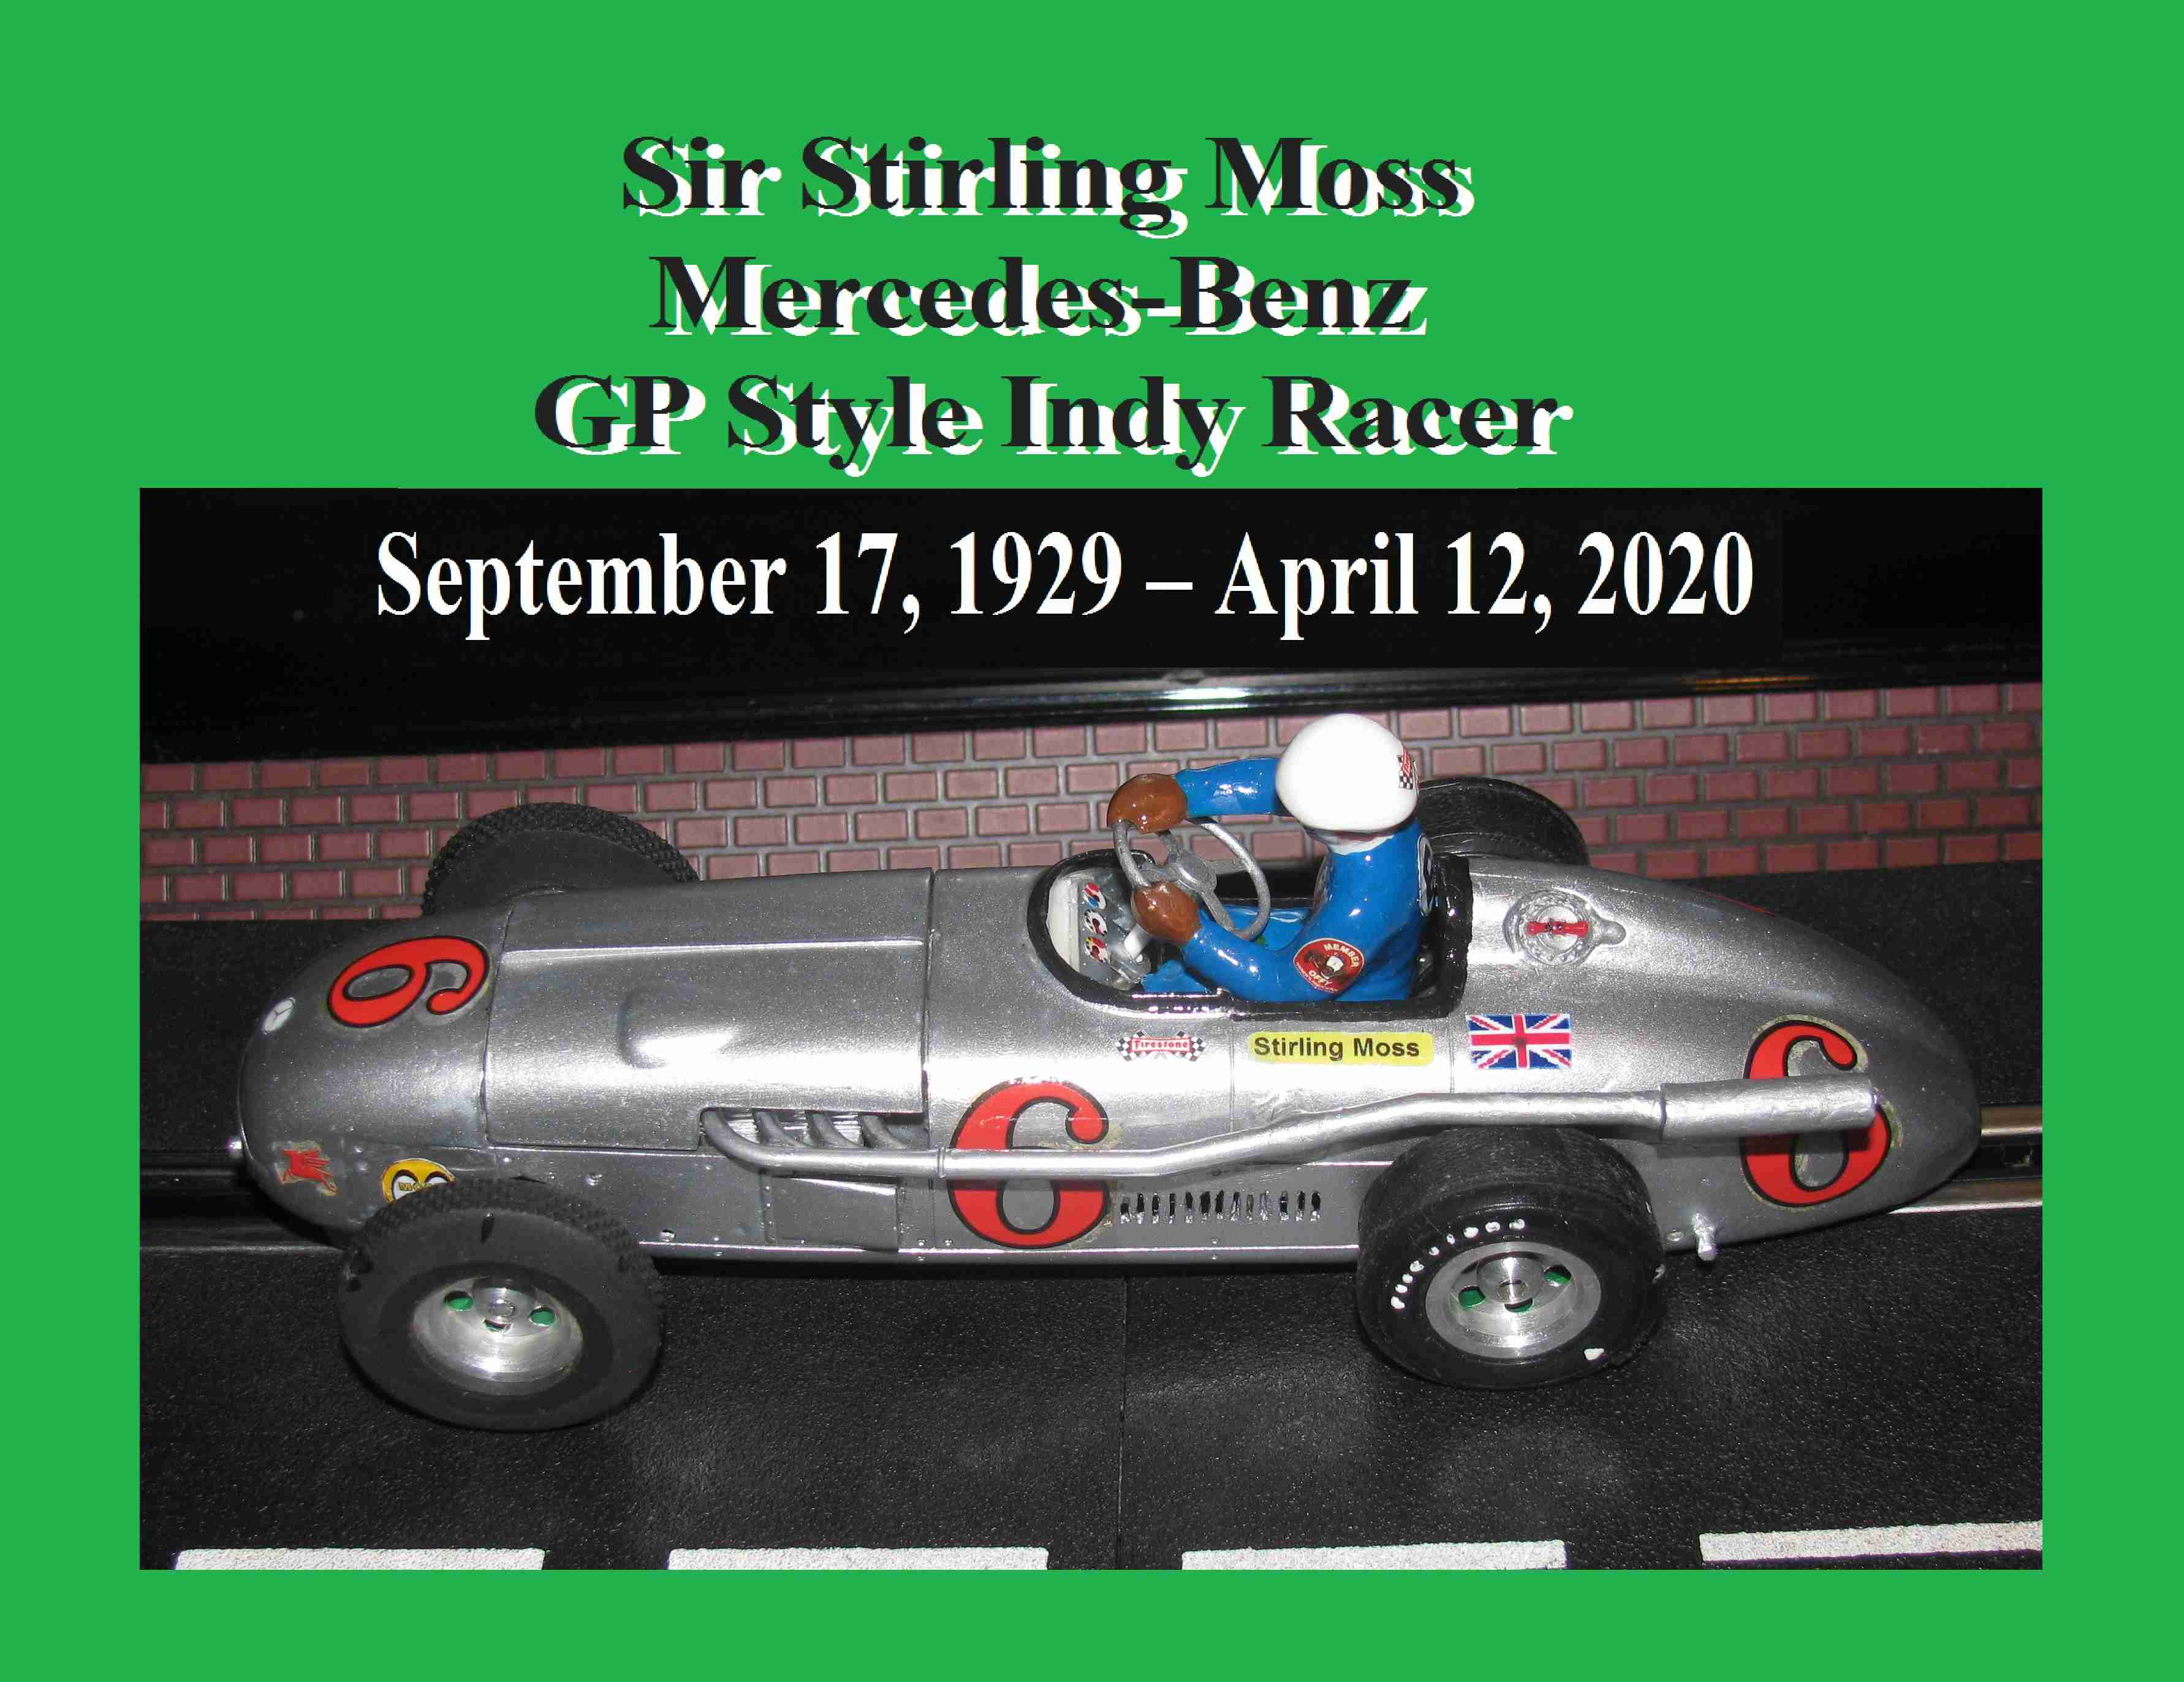 * Winter Super Sale * Sir Stirling Moss Mercedes-Benz GP Style Indy Racer Slot Car 1:24 Scale, INCLUDES: High Quality Display Stand